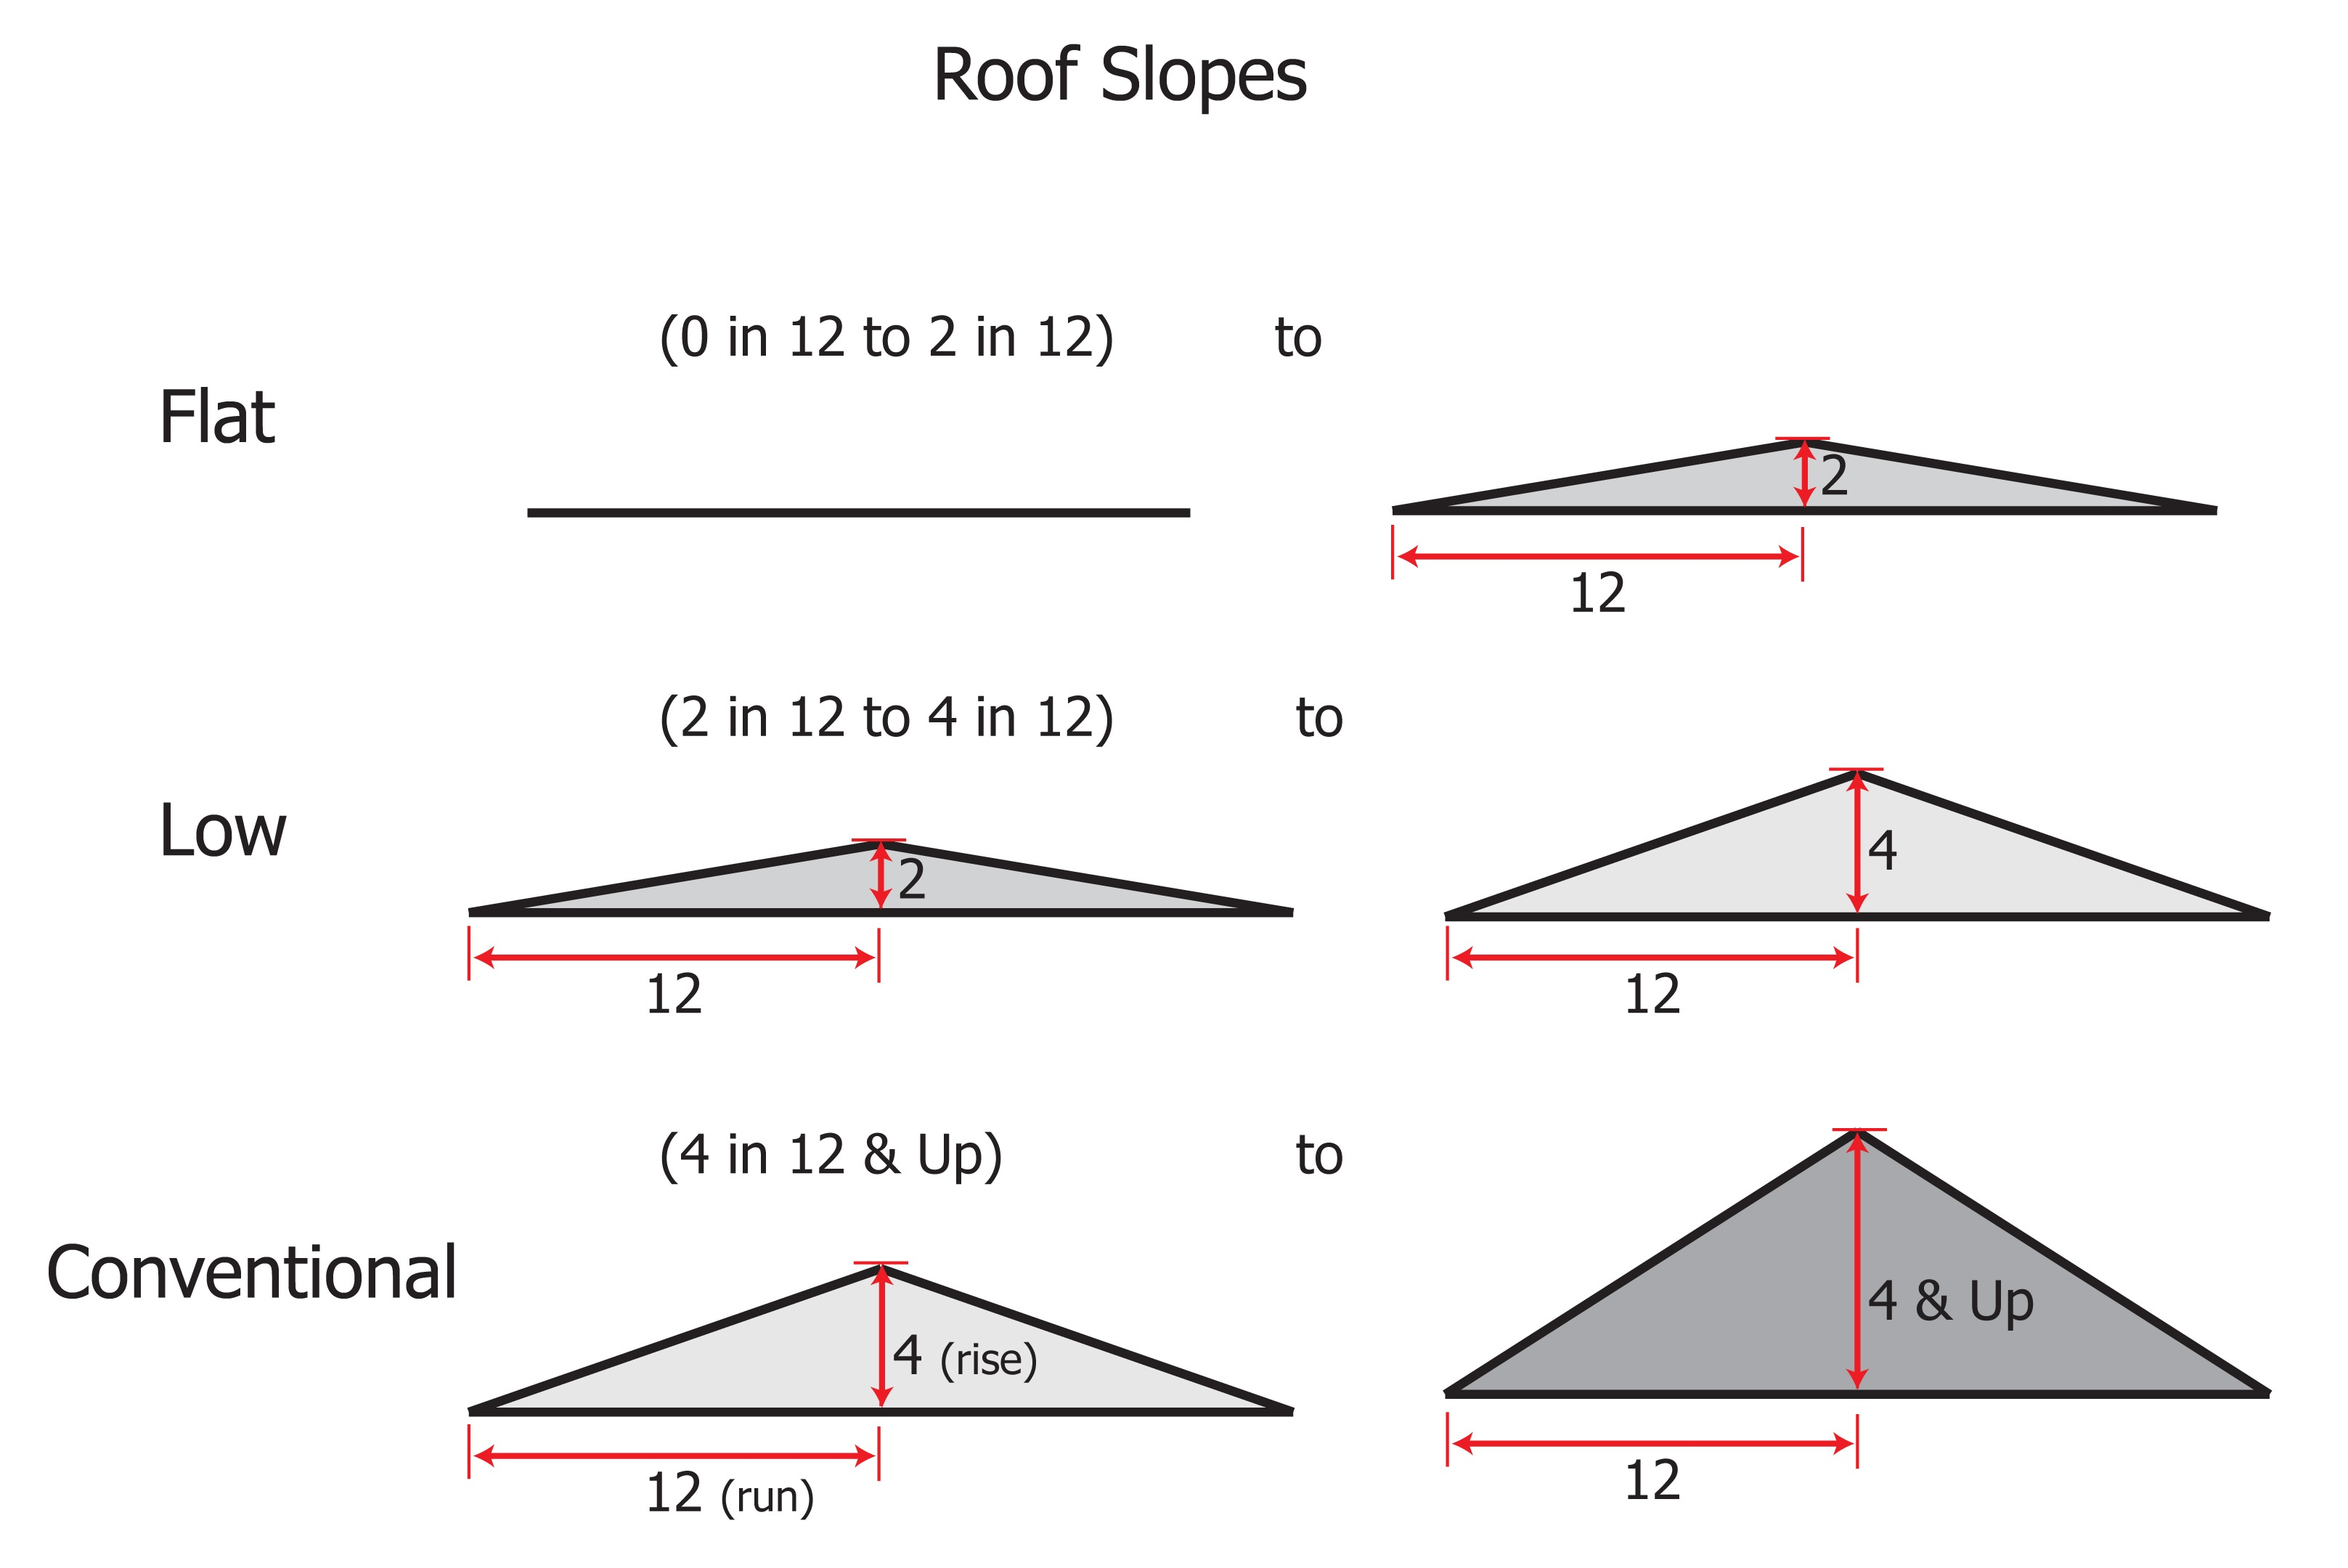 Roof Slopes Amp Roof Pitch Guide Sc 1 St Roofing Contractor